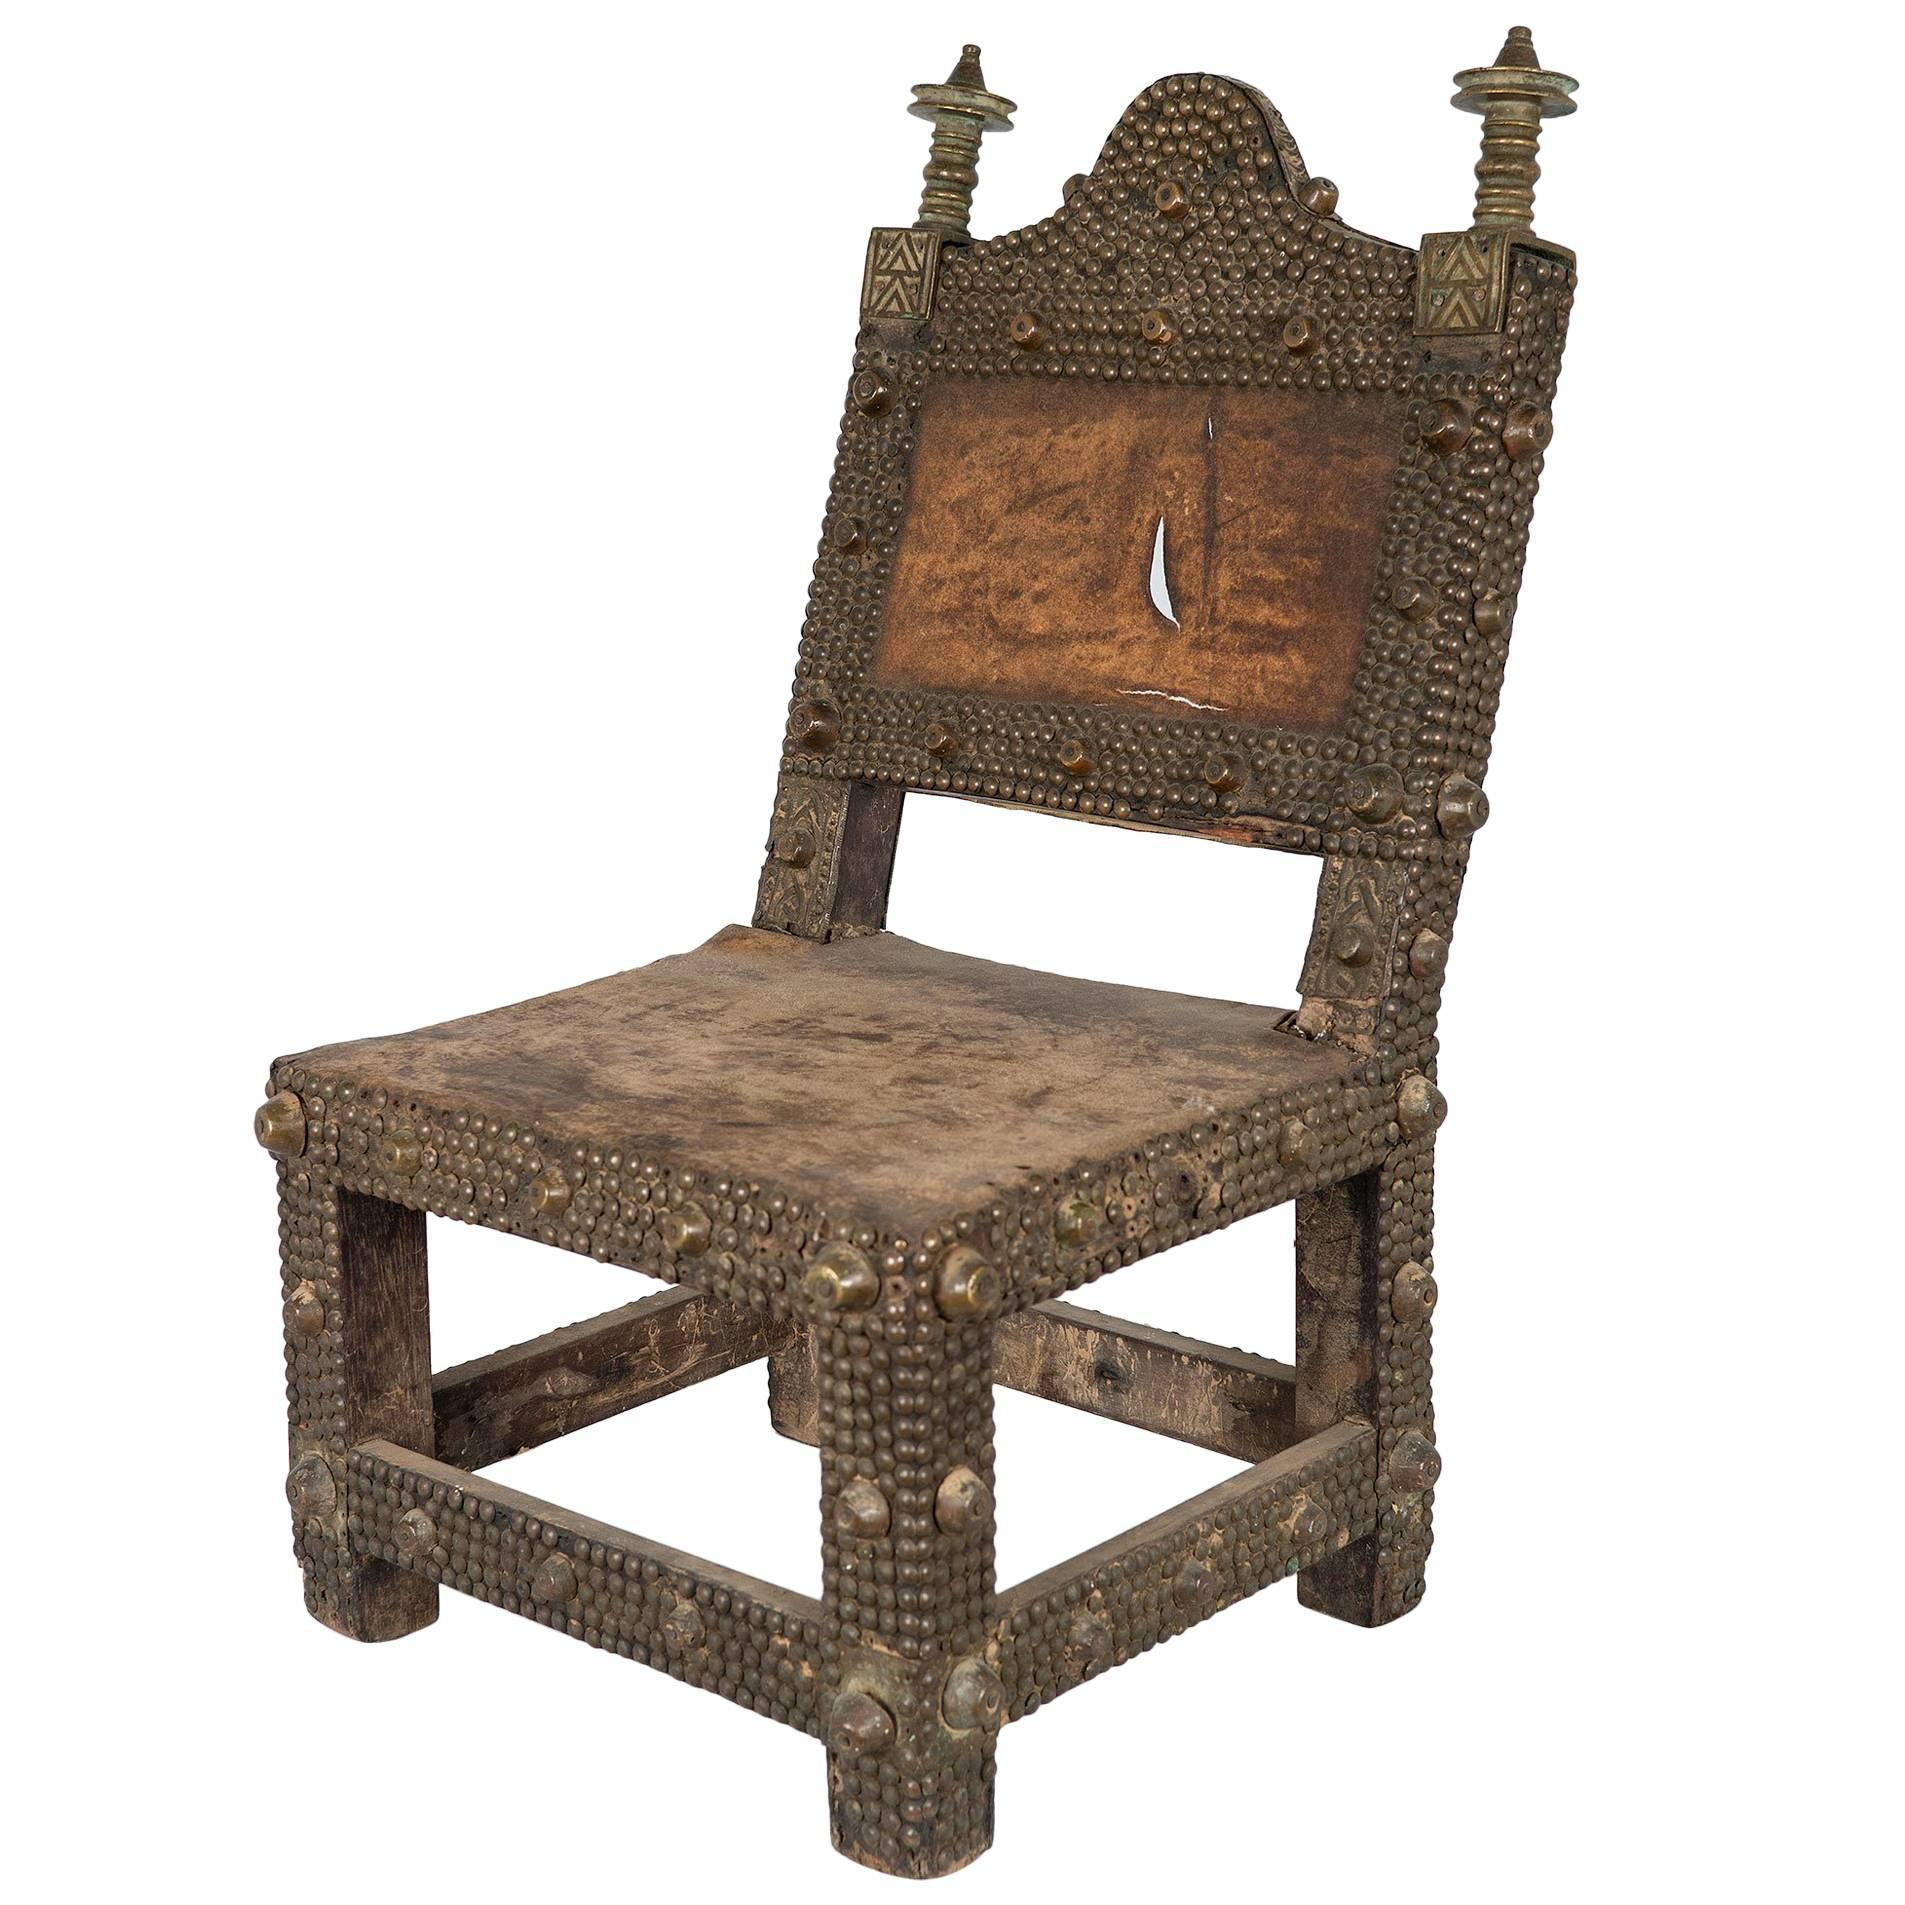 kings chair for sale how to make covers diy vintage african ashanti throne at 1stdibs